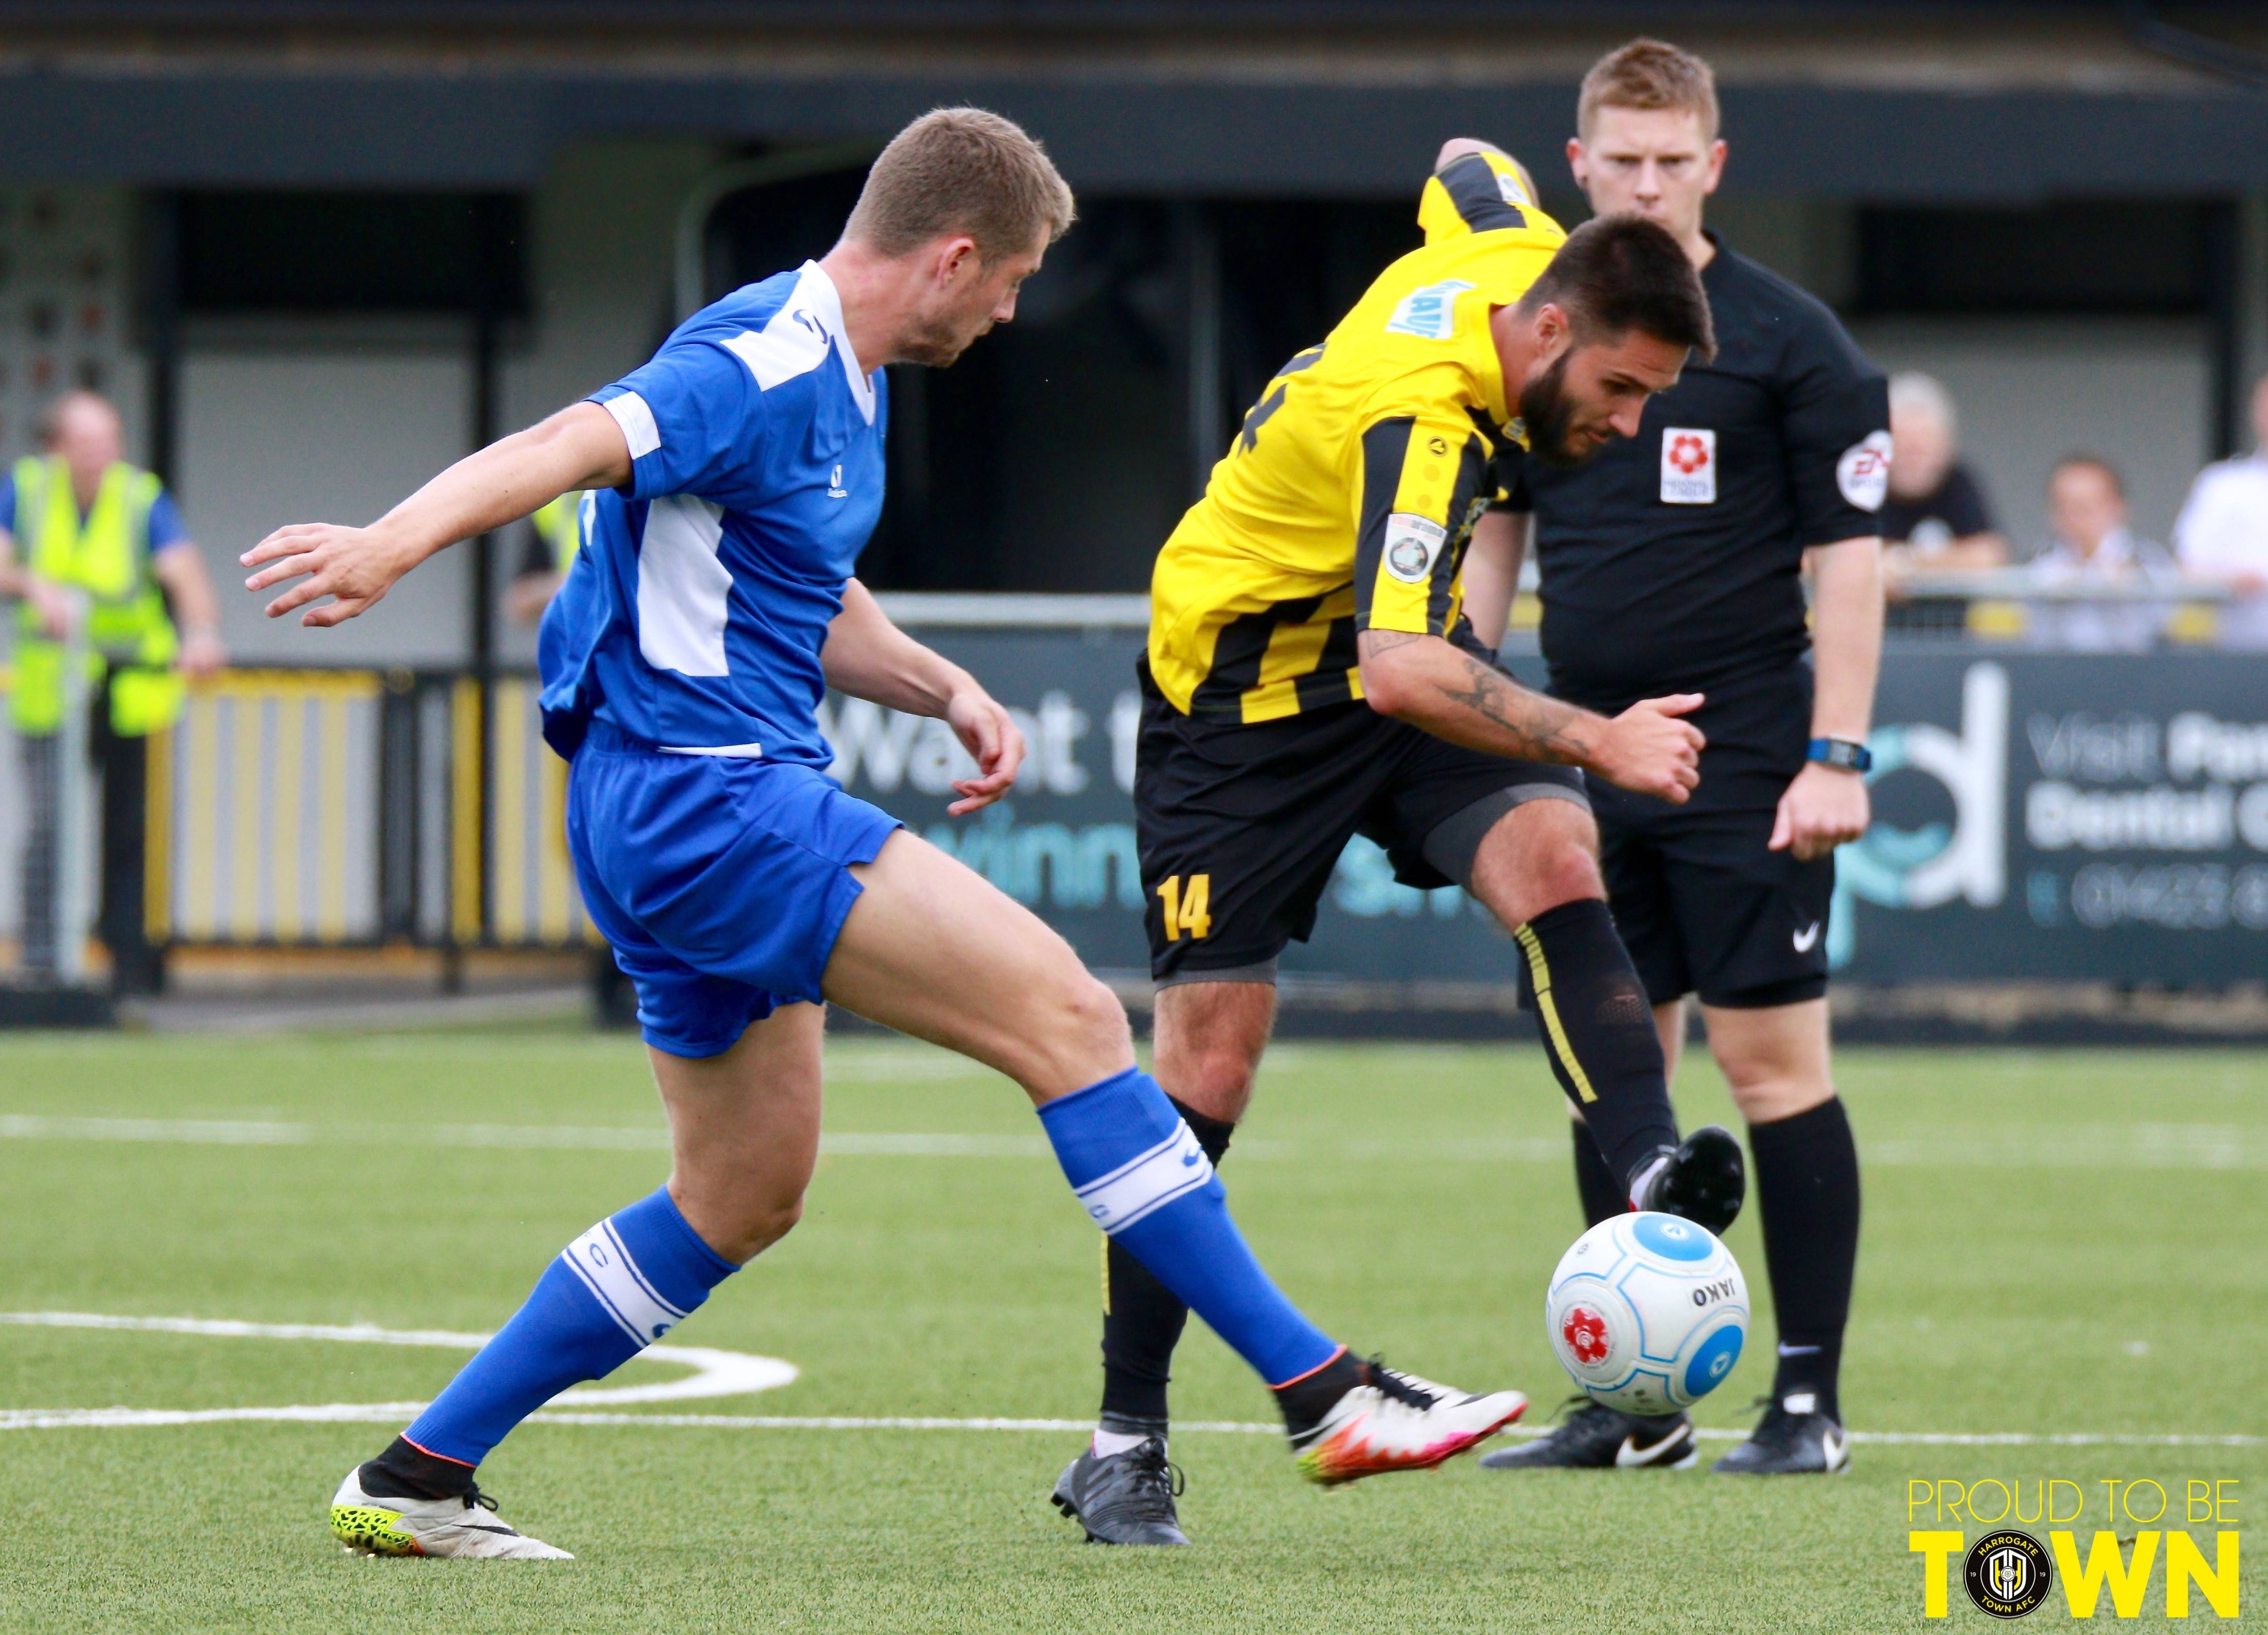 In Pictures: Town 3-0 Gateshead Image 10